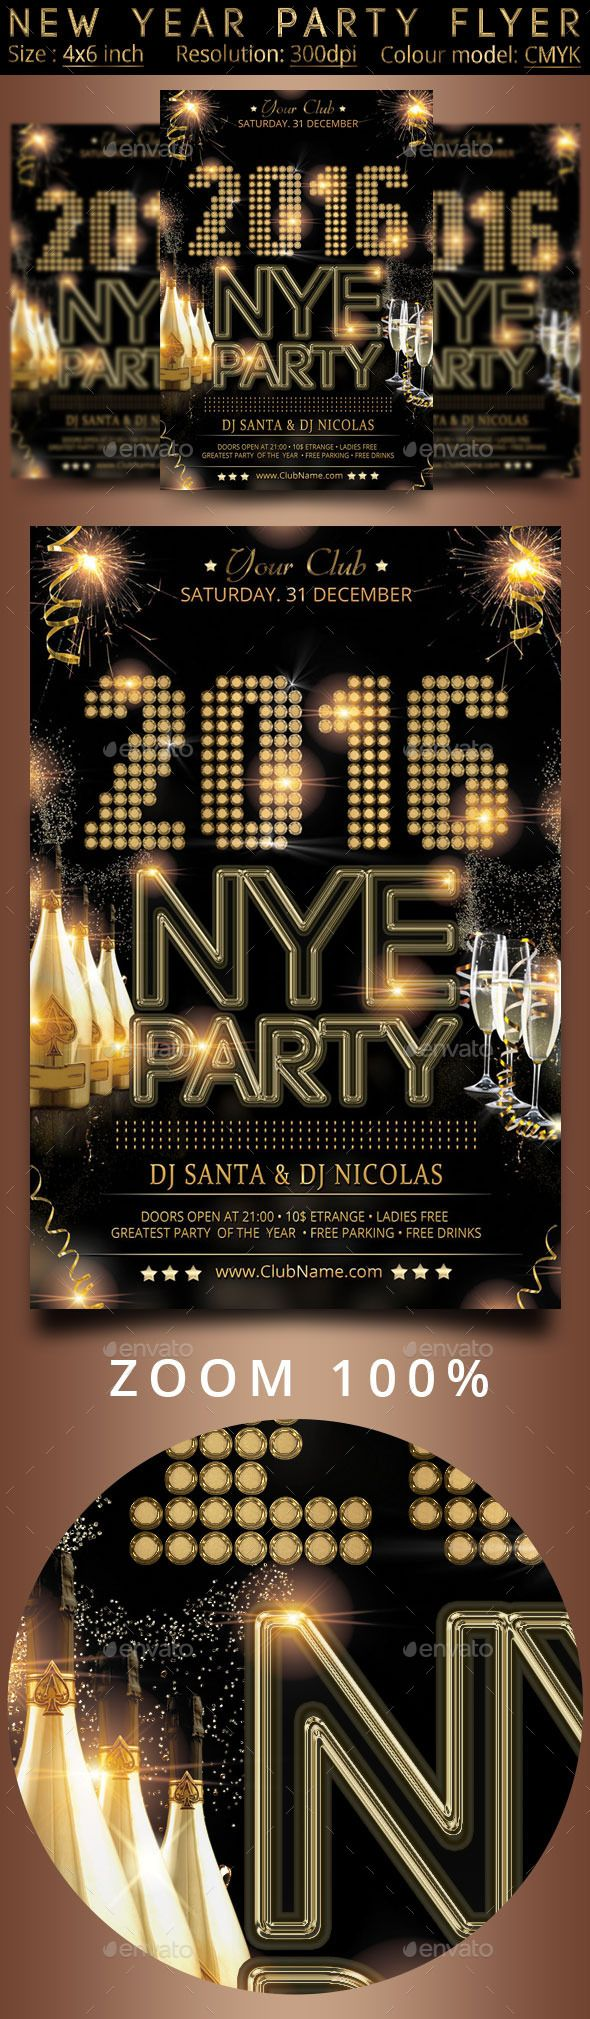 New Year Party Flyer Event PostersFlyer TemplateNew